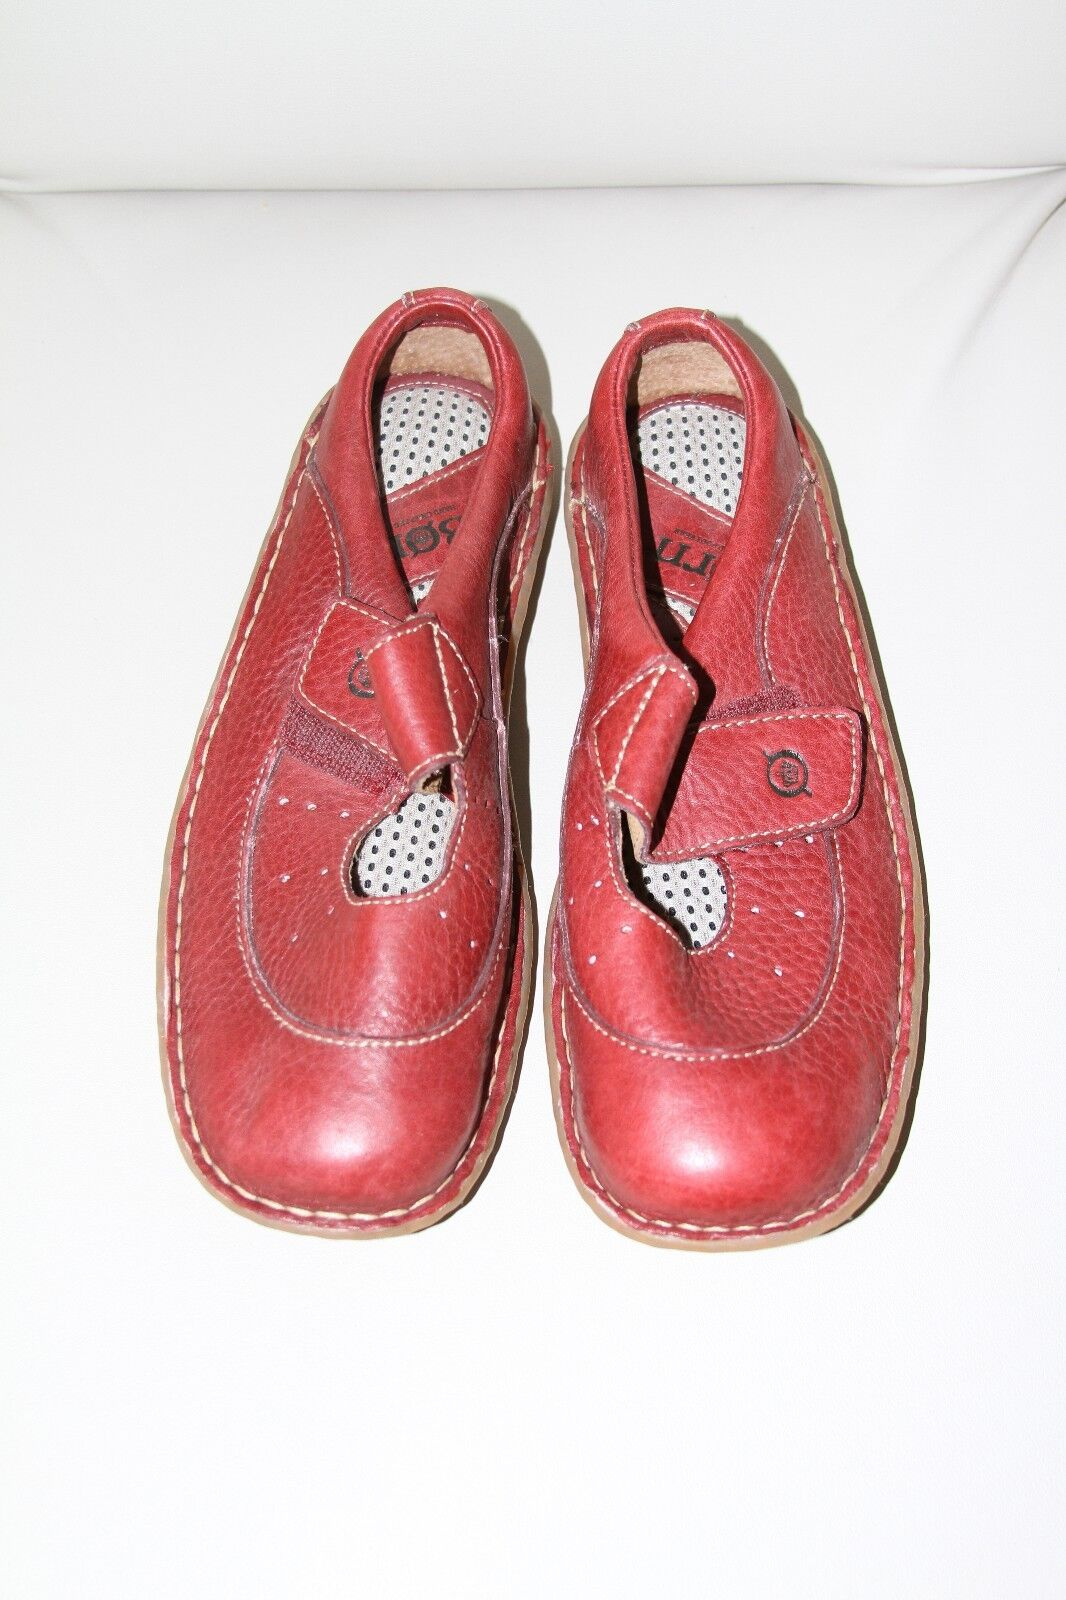 BORN Handcrafted RED Premium Leather Comfort Flats 7M  NEW